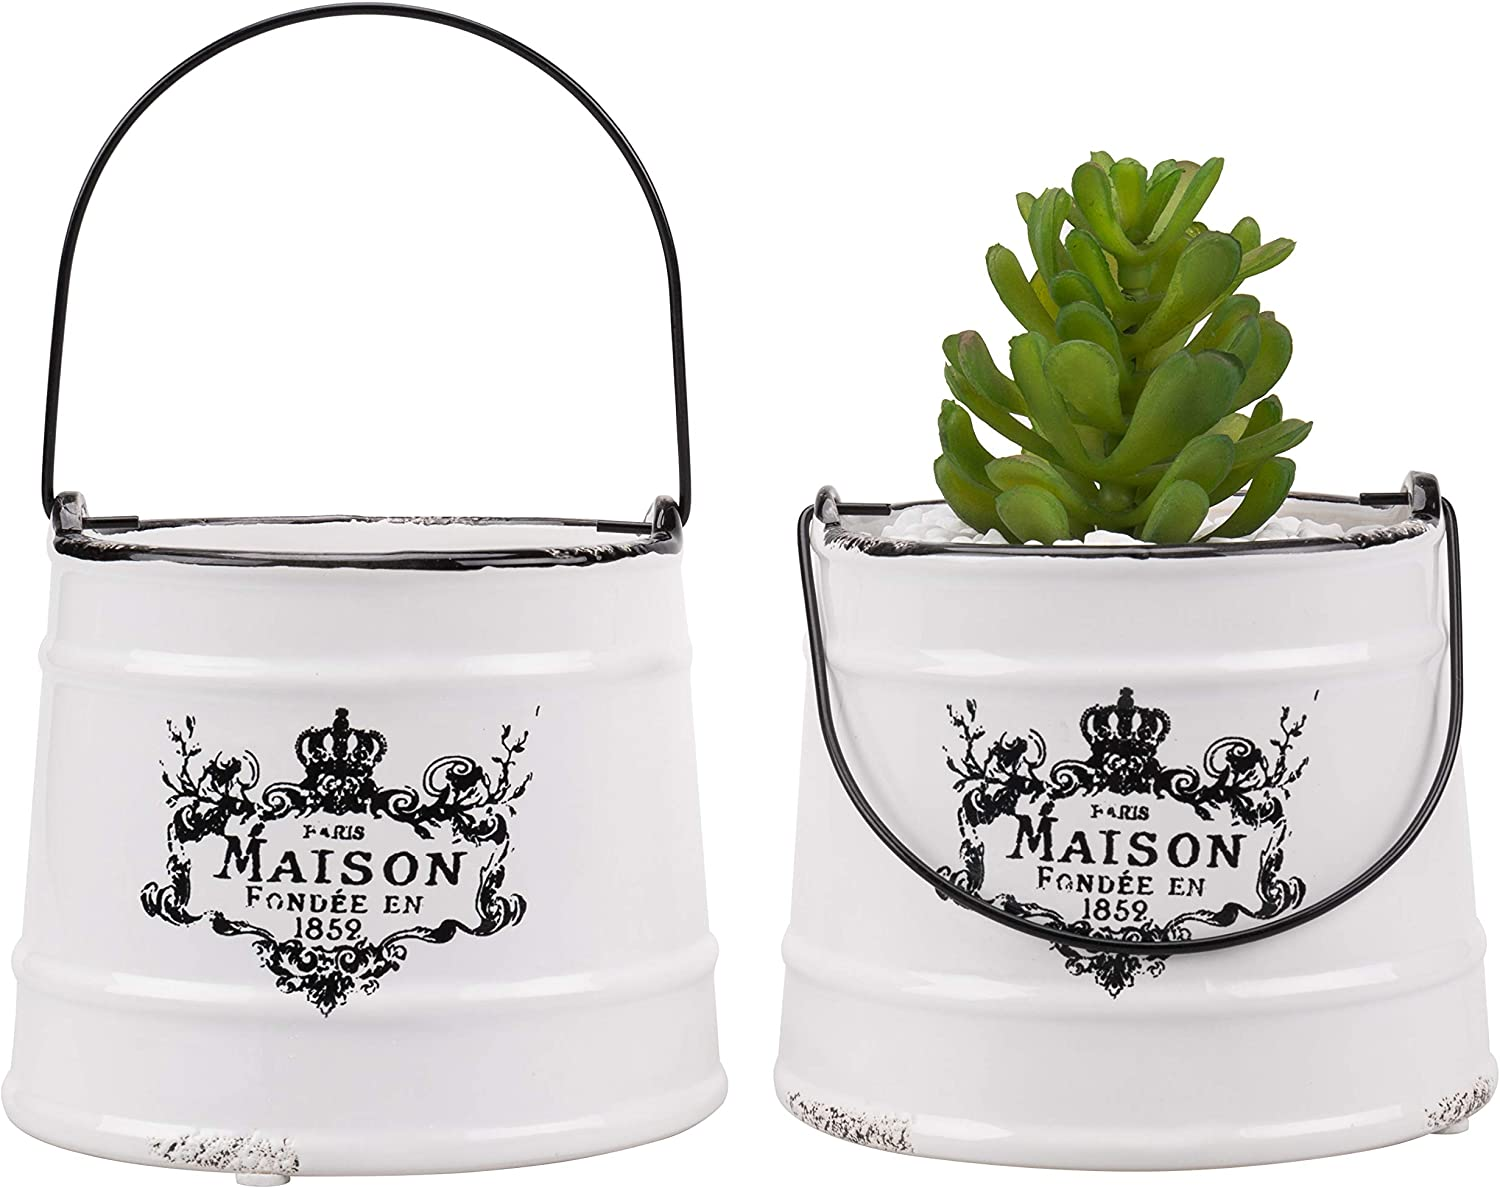 MyGift Rustic White Ceramic French Maison Pail Design Planter Pot, Set of 2